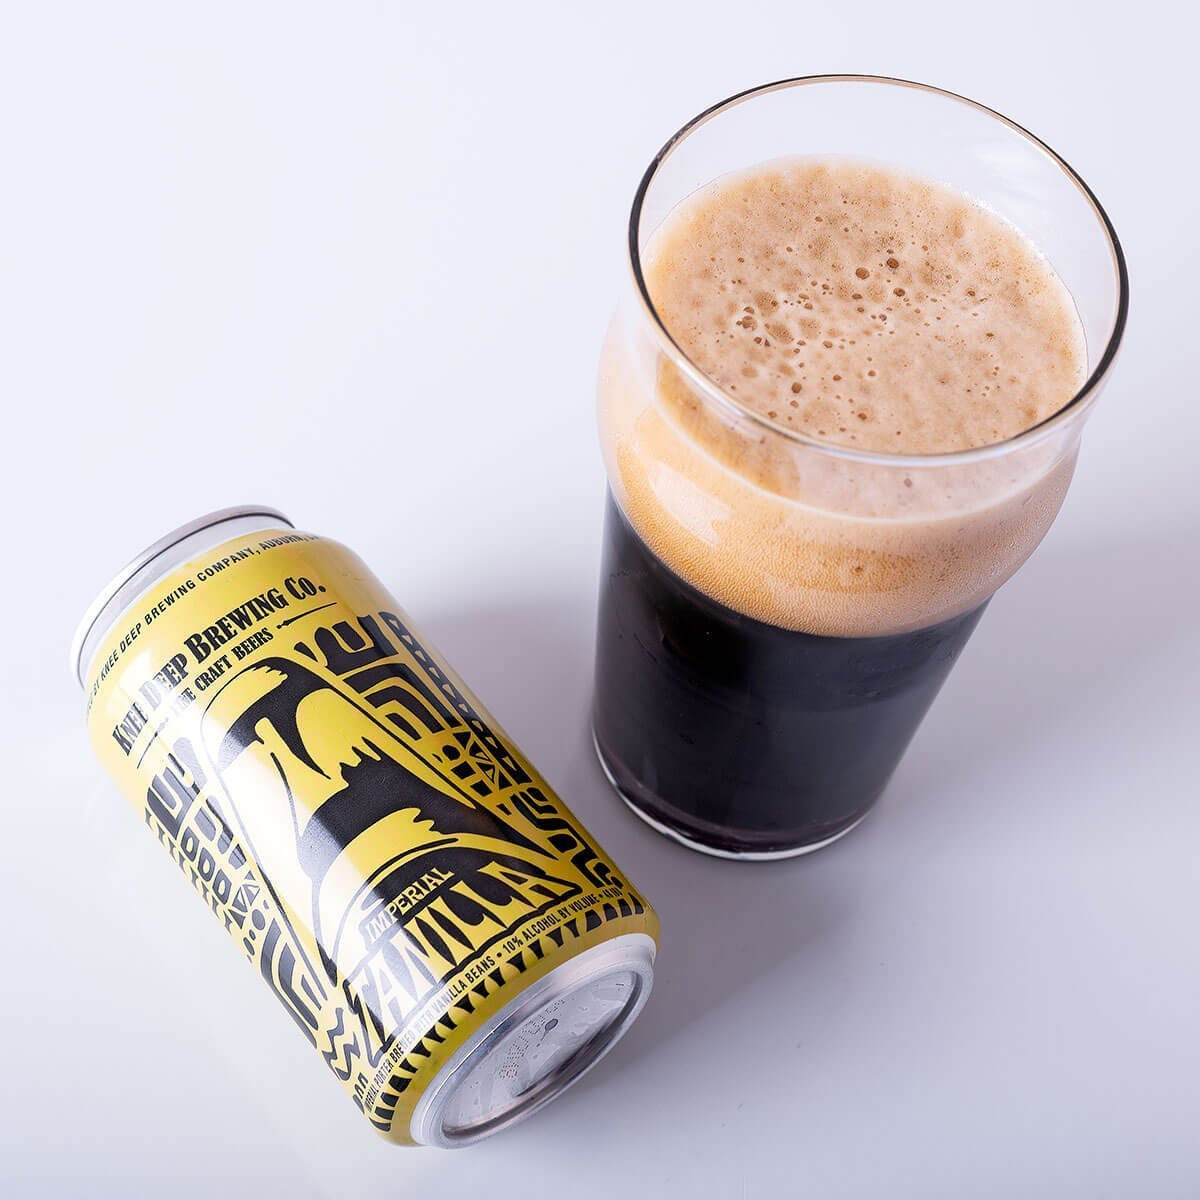 A 10% ABV version of Tanilla. Of course we added more hop bitterness to balance the chocolate, expresso and vanilla malt sweetness. Drink at your own risk. This is a big beer, but drinks way too easy.